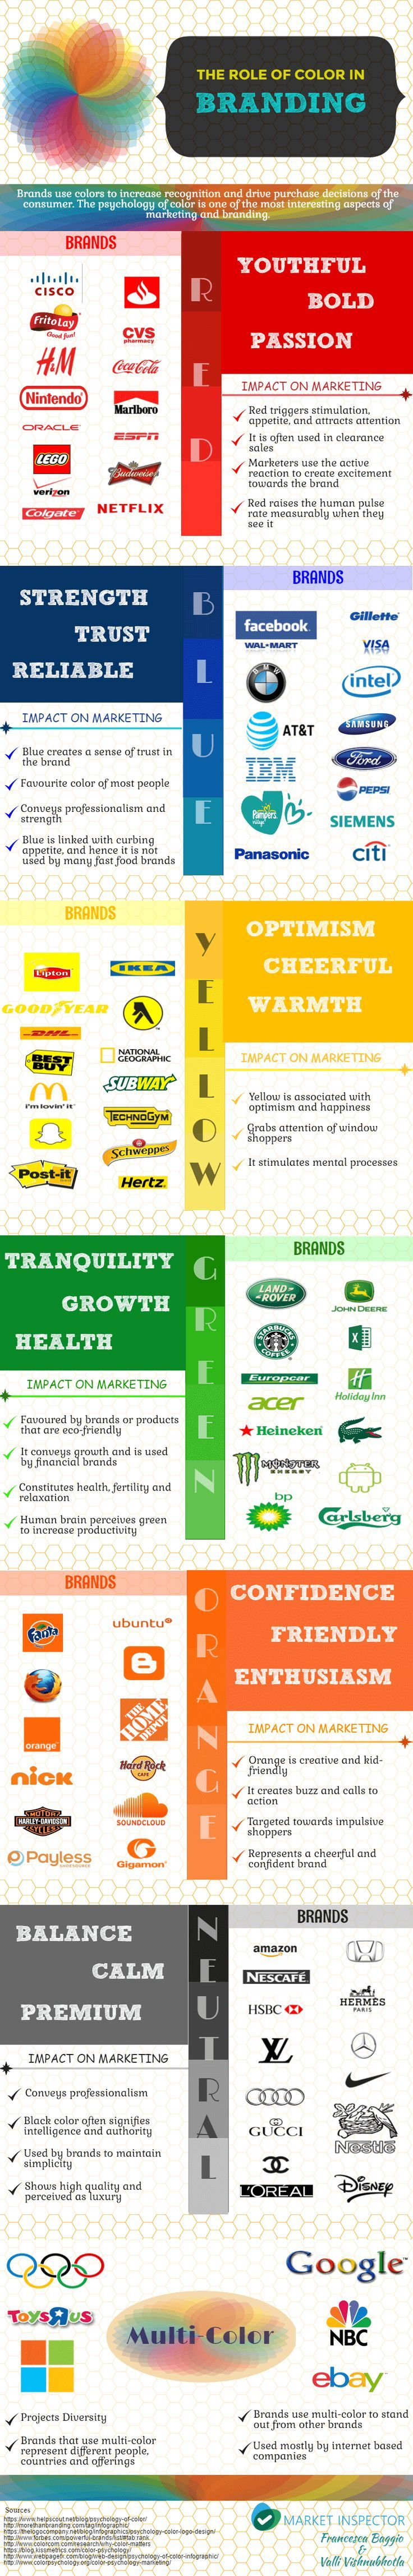 Creating a brand identity? It starts with brand colors! Great tips for small businesses and solopreneurs marketing their own business. How do you want your business perceived? Learn each color psychology and its impact on marketing from this infographic.